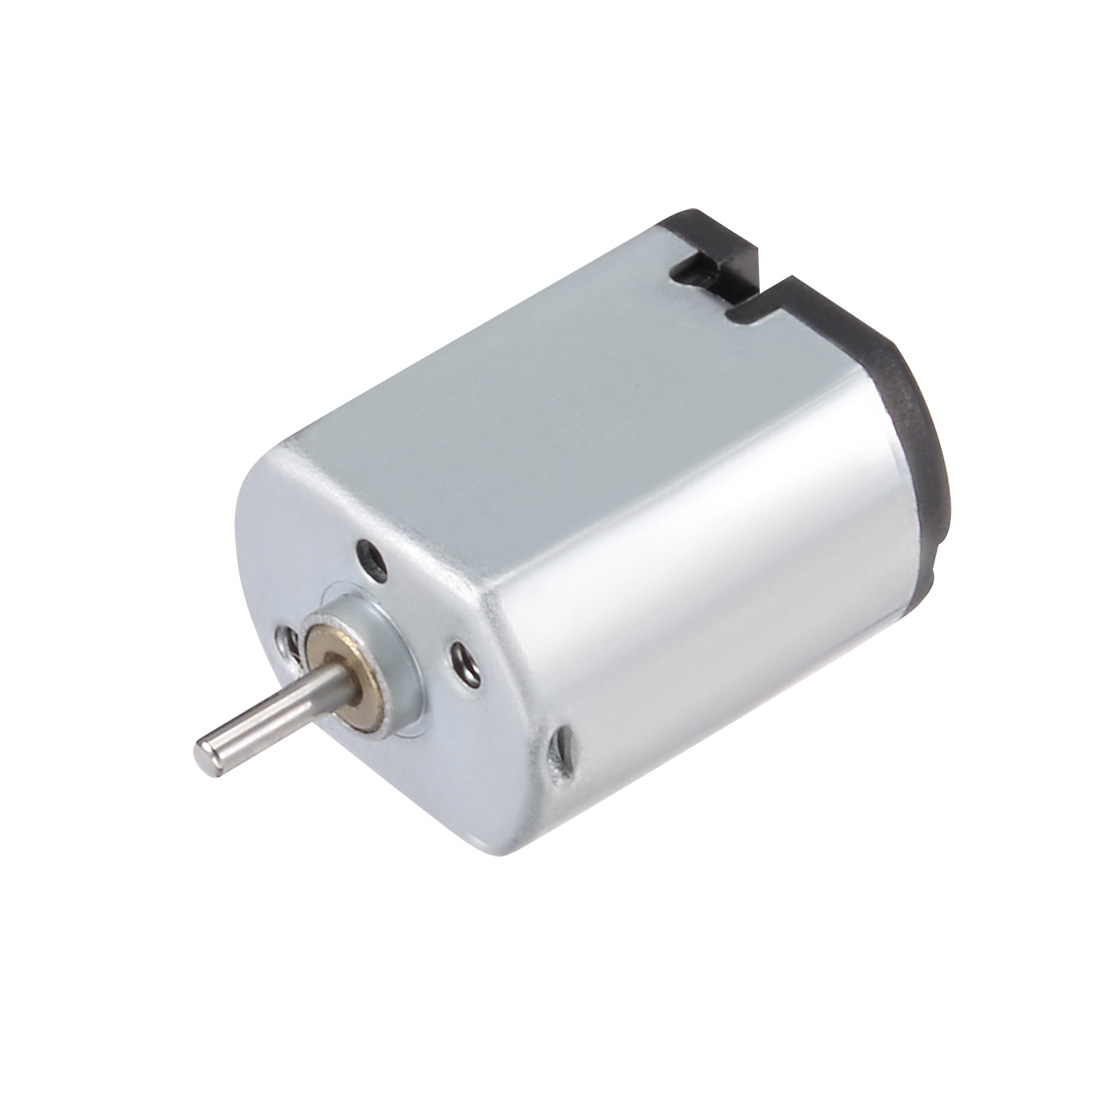 Micro Motor DC 6V 12000RPM High Speed Motor for DIY Toy Models Remote Control